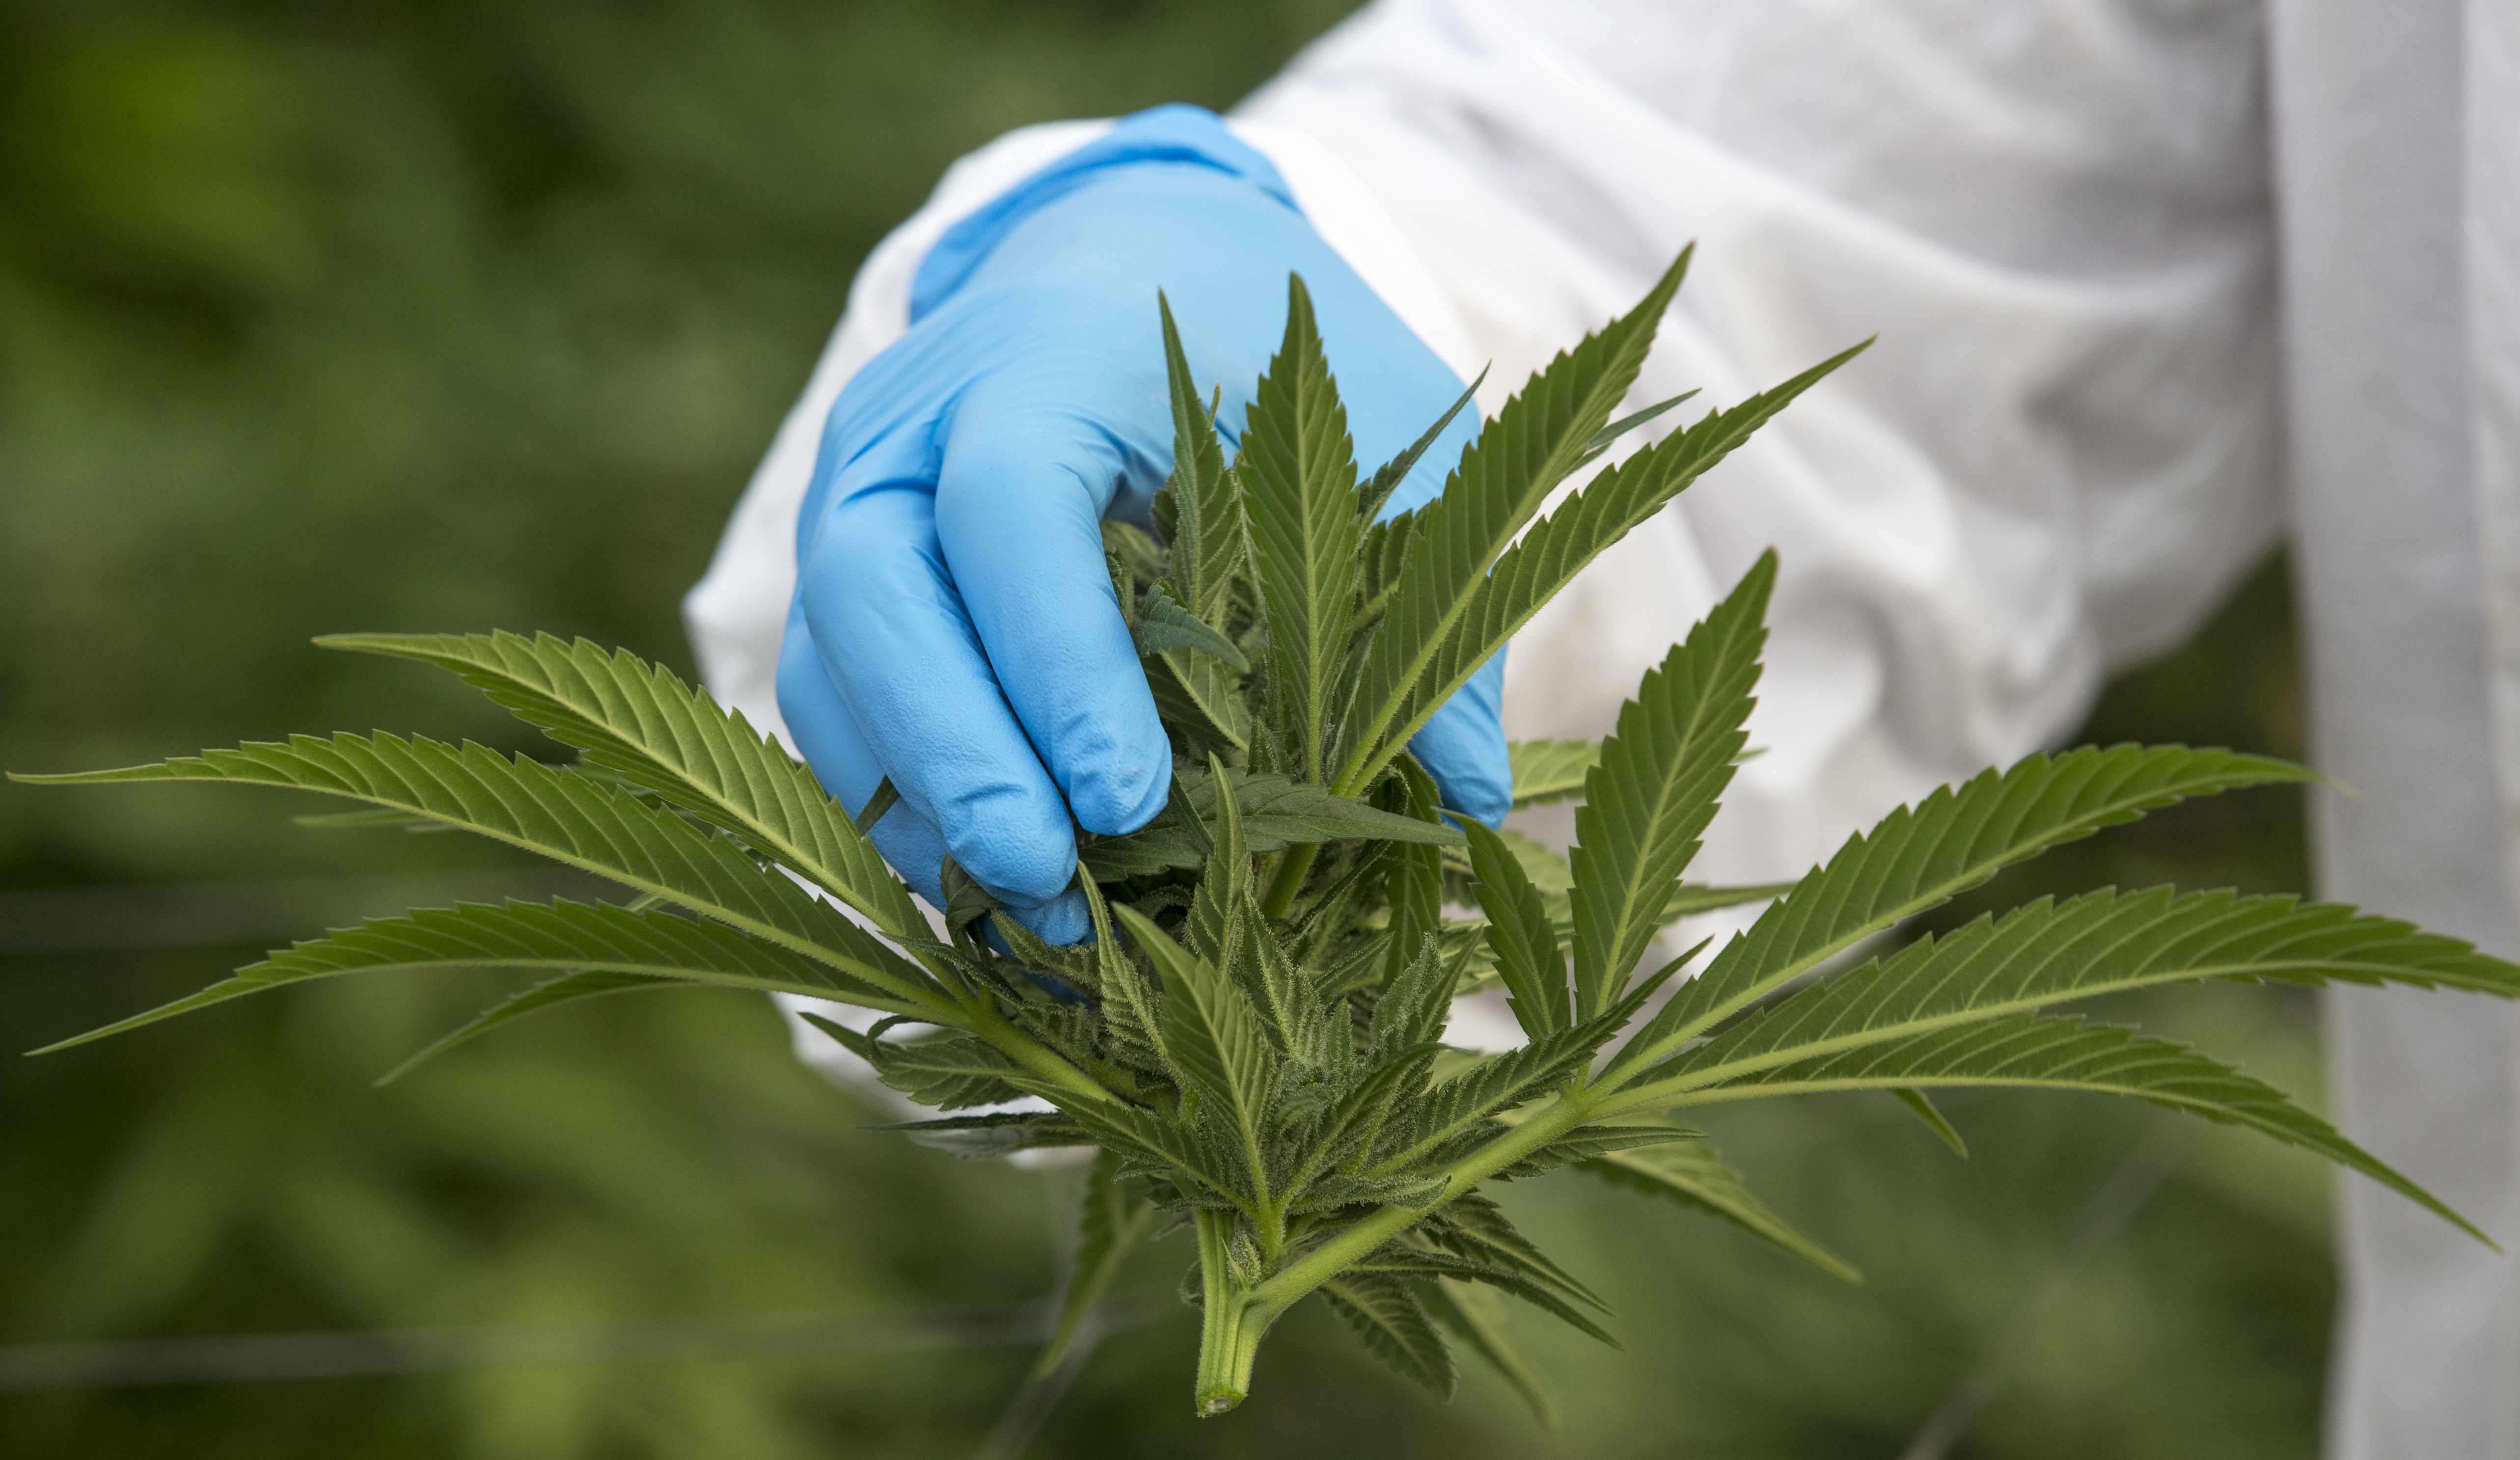 An Israeli woman works on marijuana plants at the BOL (Breath Of Life) Pharma greenhouse in the country's second-largest medical cannabis plantation, near Kfar Pines in northern Israel, on March 9, 2016.